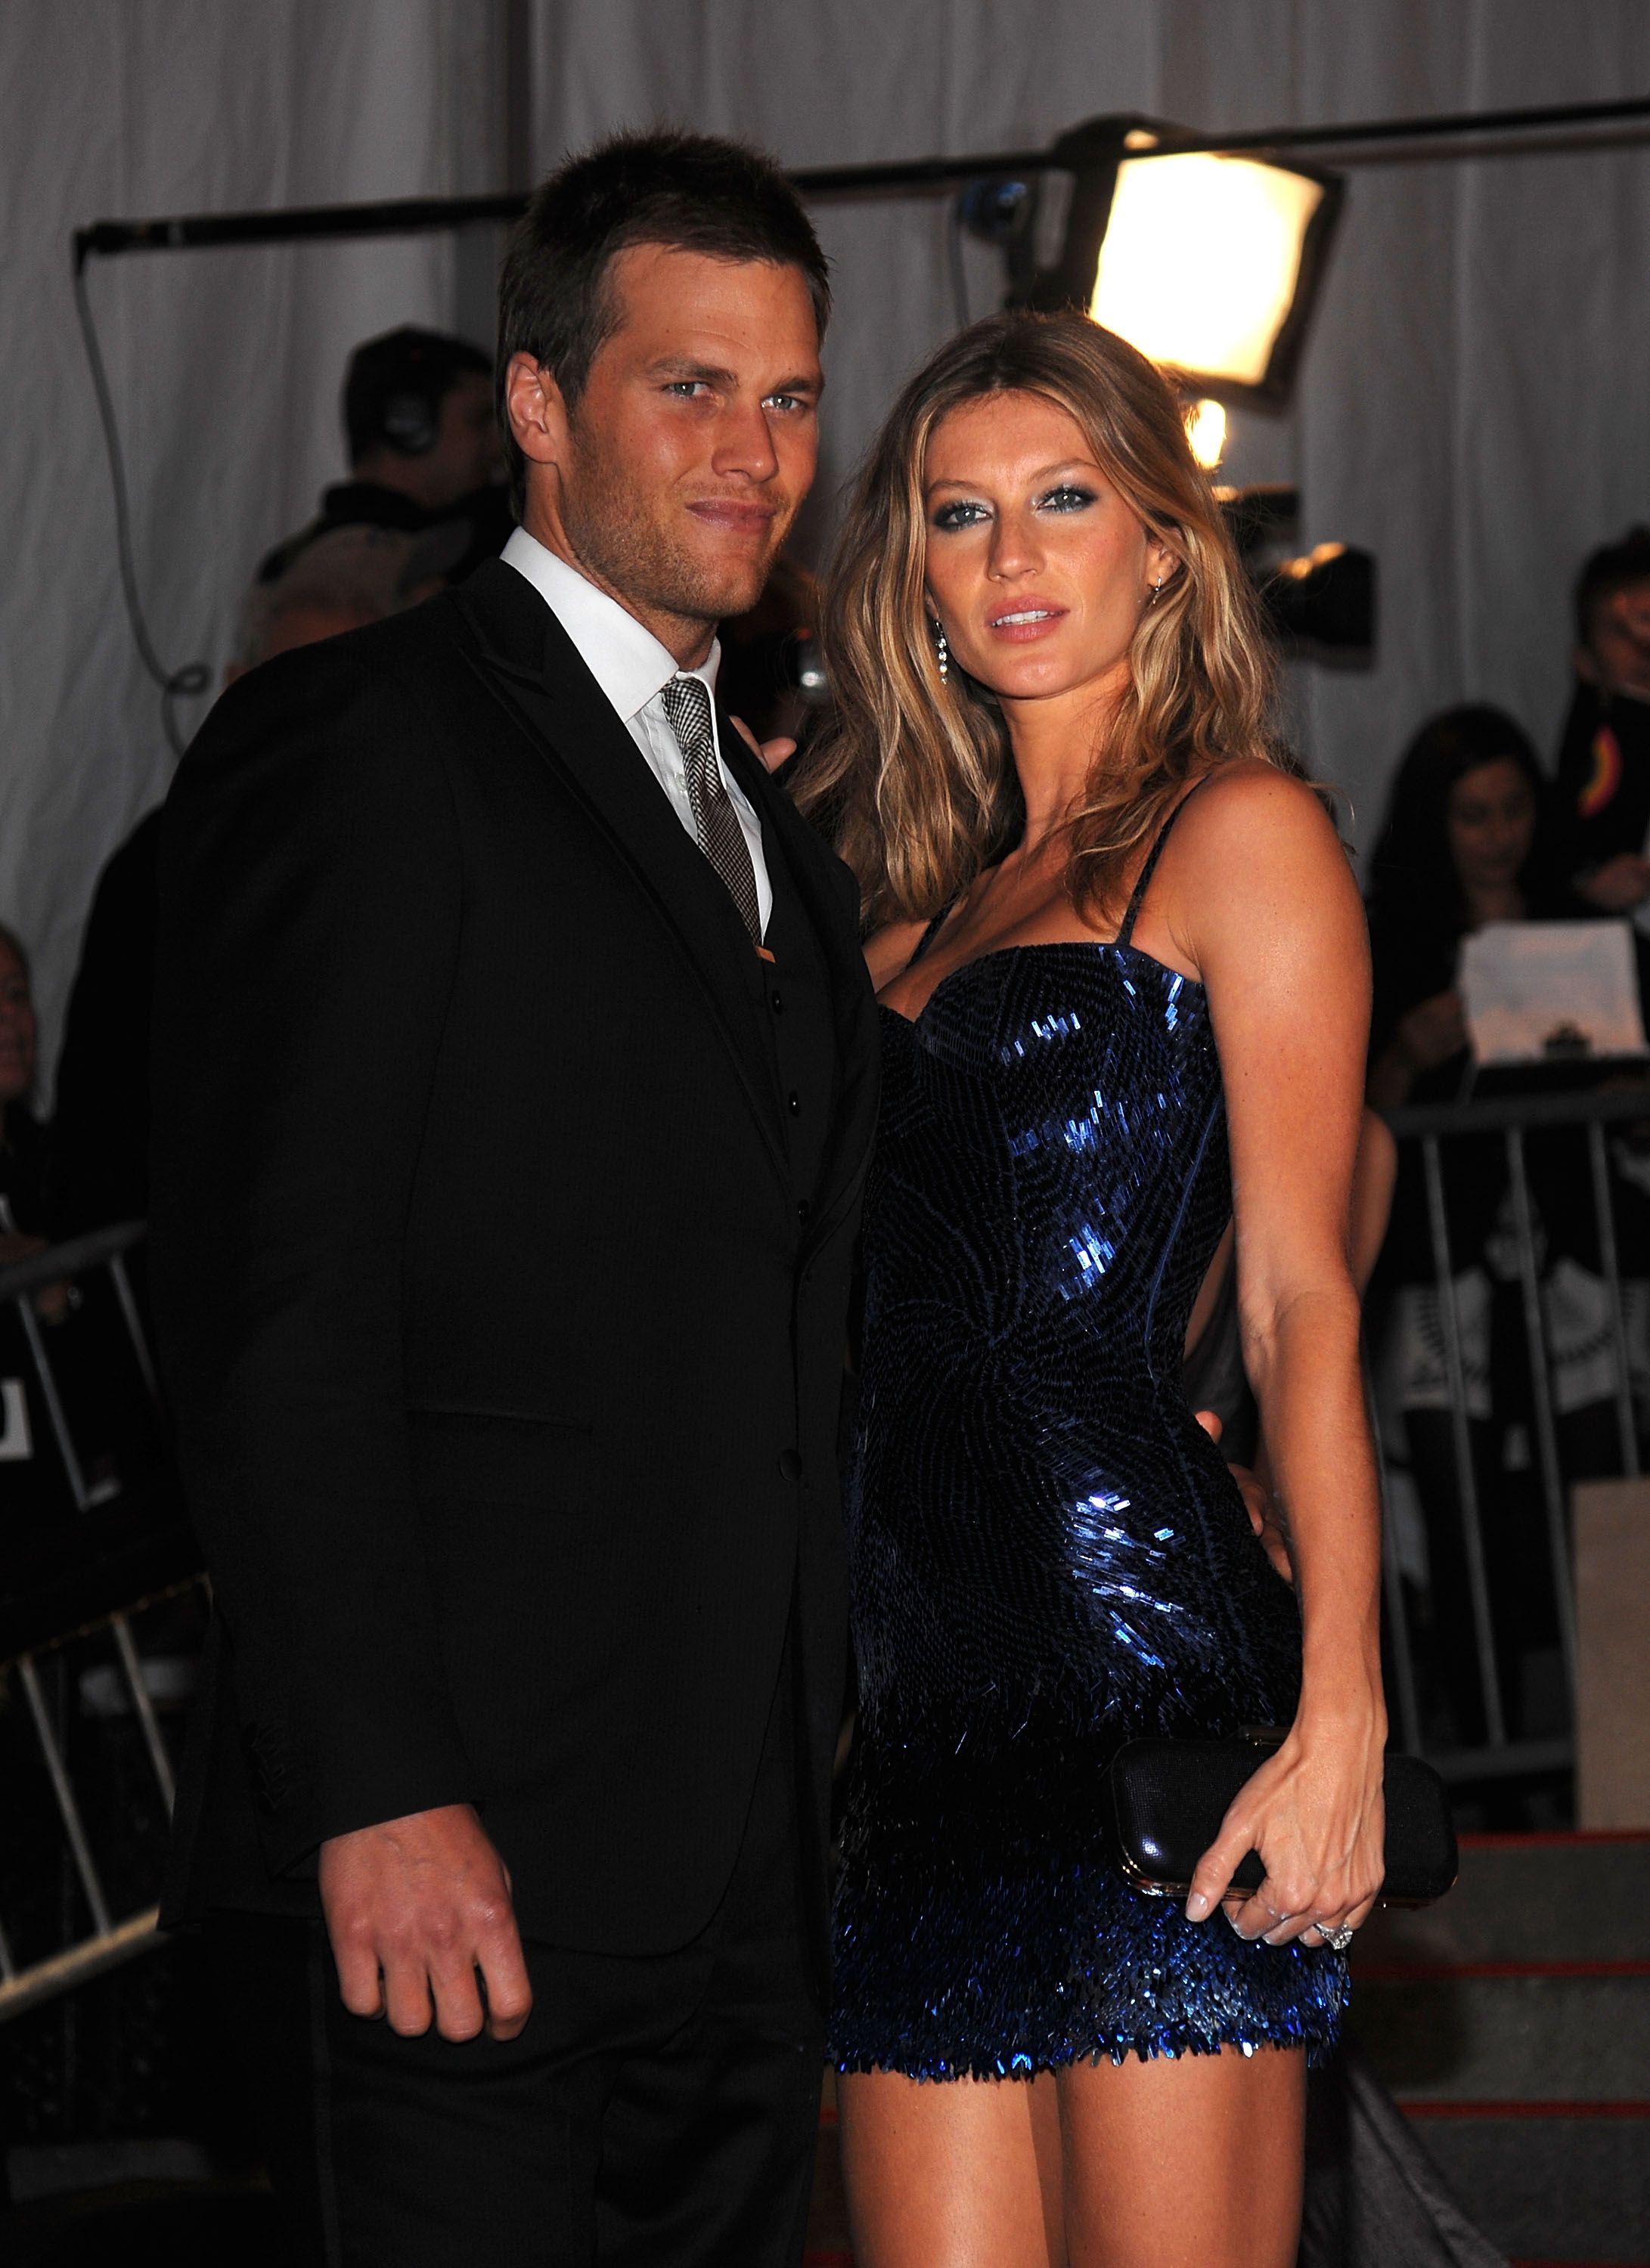 """Tom Brady and Gisele Bündchen at """"The Model as Muse: Embodying Fashion"""" Costume Institute Gala on May 4, 2009, in New York City 